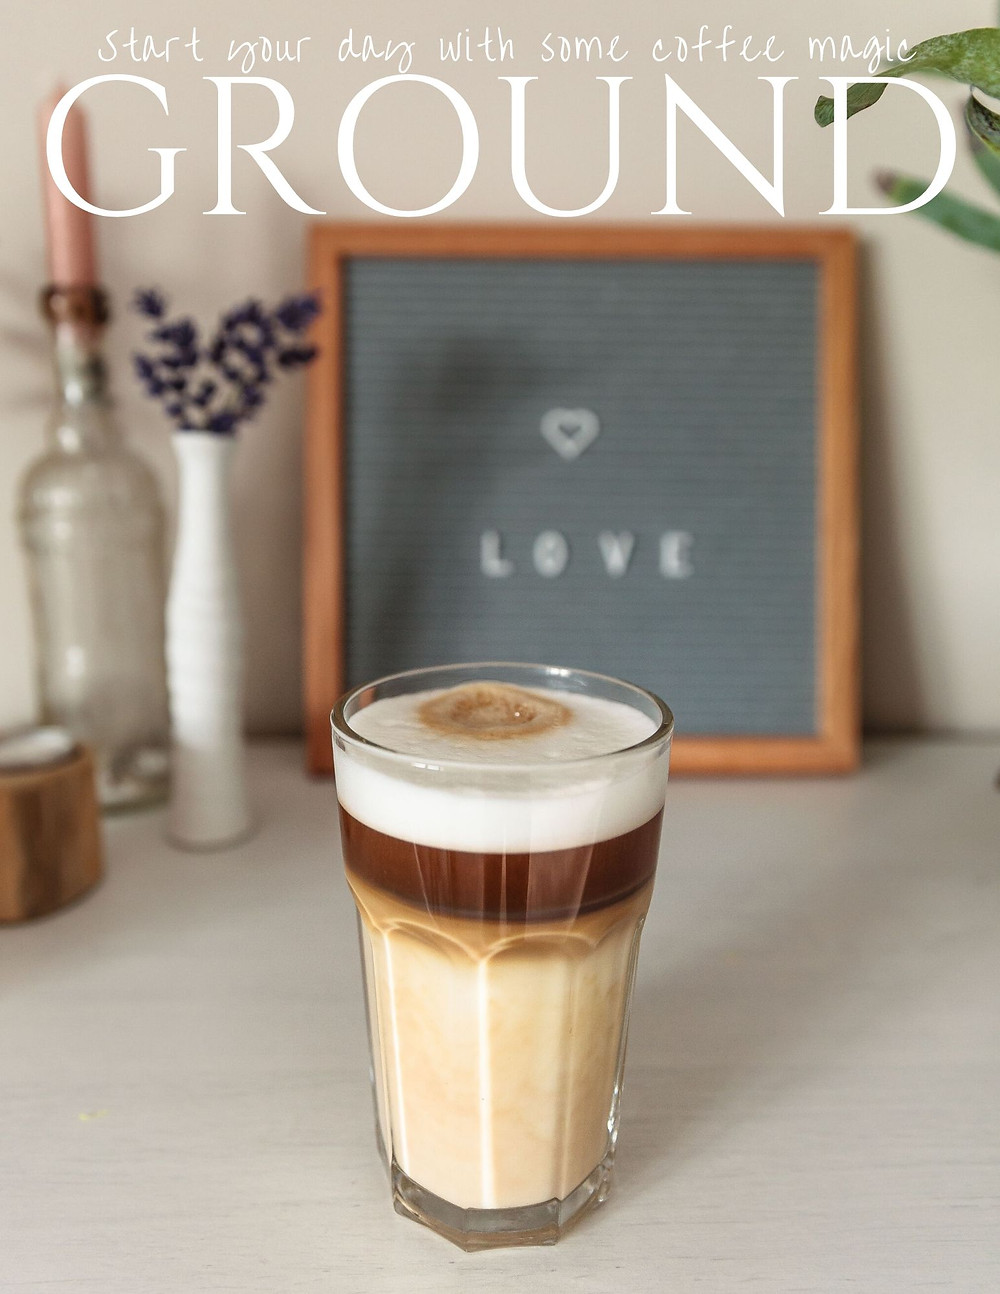 Start your day with some coffee magic at Ground - flyer